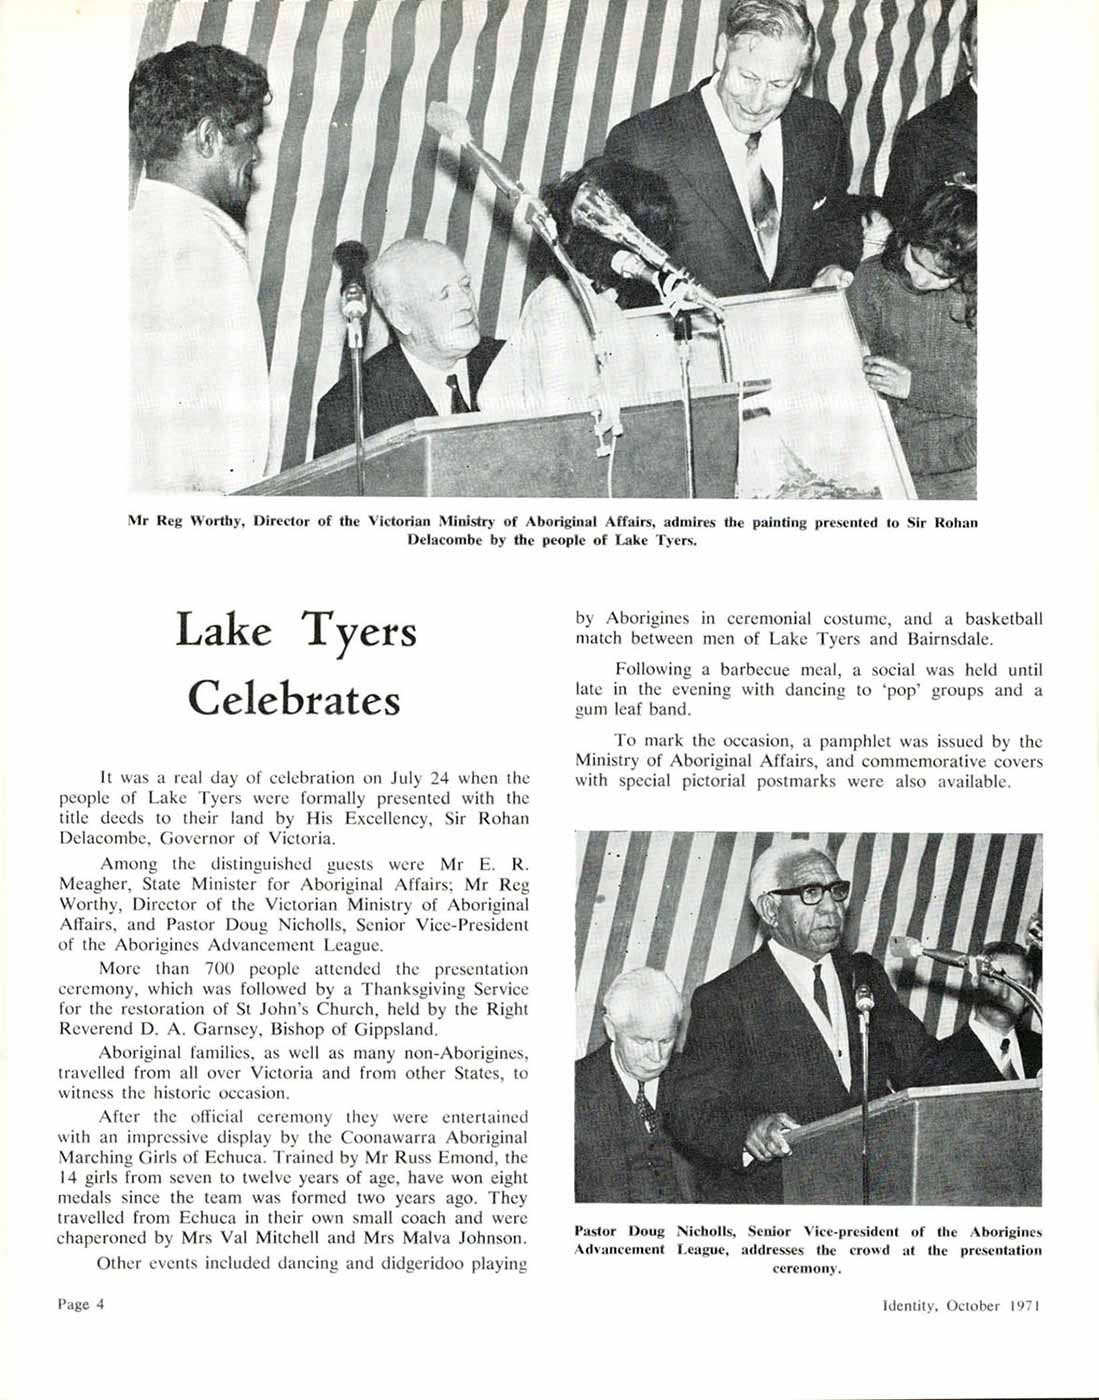 Page out of publication that features an image of Reg Worthy and another image of Pastor Doug Nicholls. Both men are participating in presentation ceremonies. The title of the section is: 'Lake Tyers Celebrates'. - click to view larger image